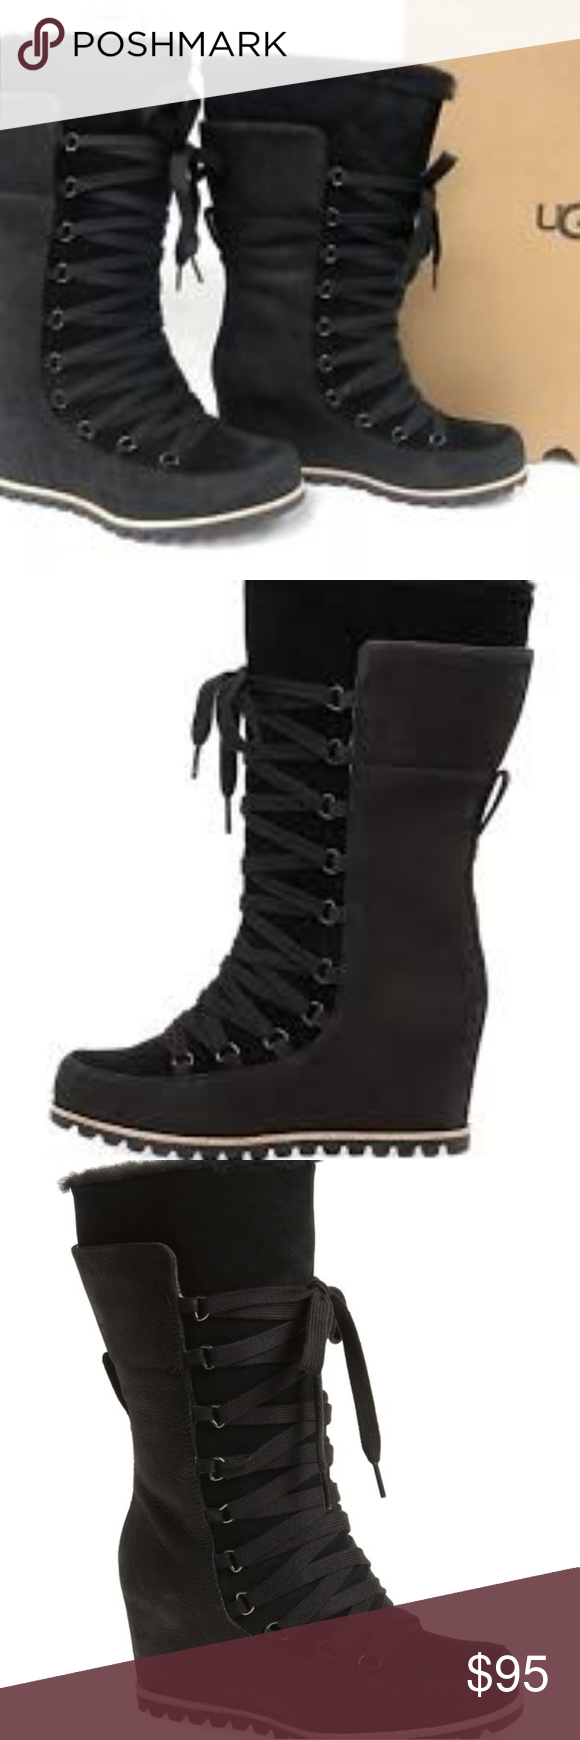 ef2566e4170 UGG Wedge lace up boots Size 6 NWT